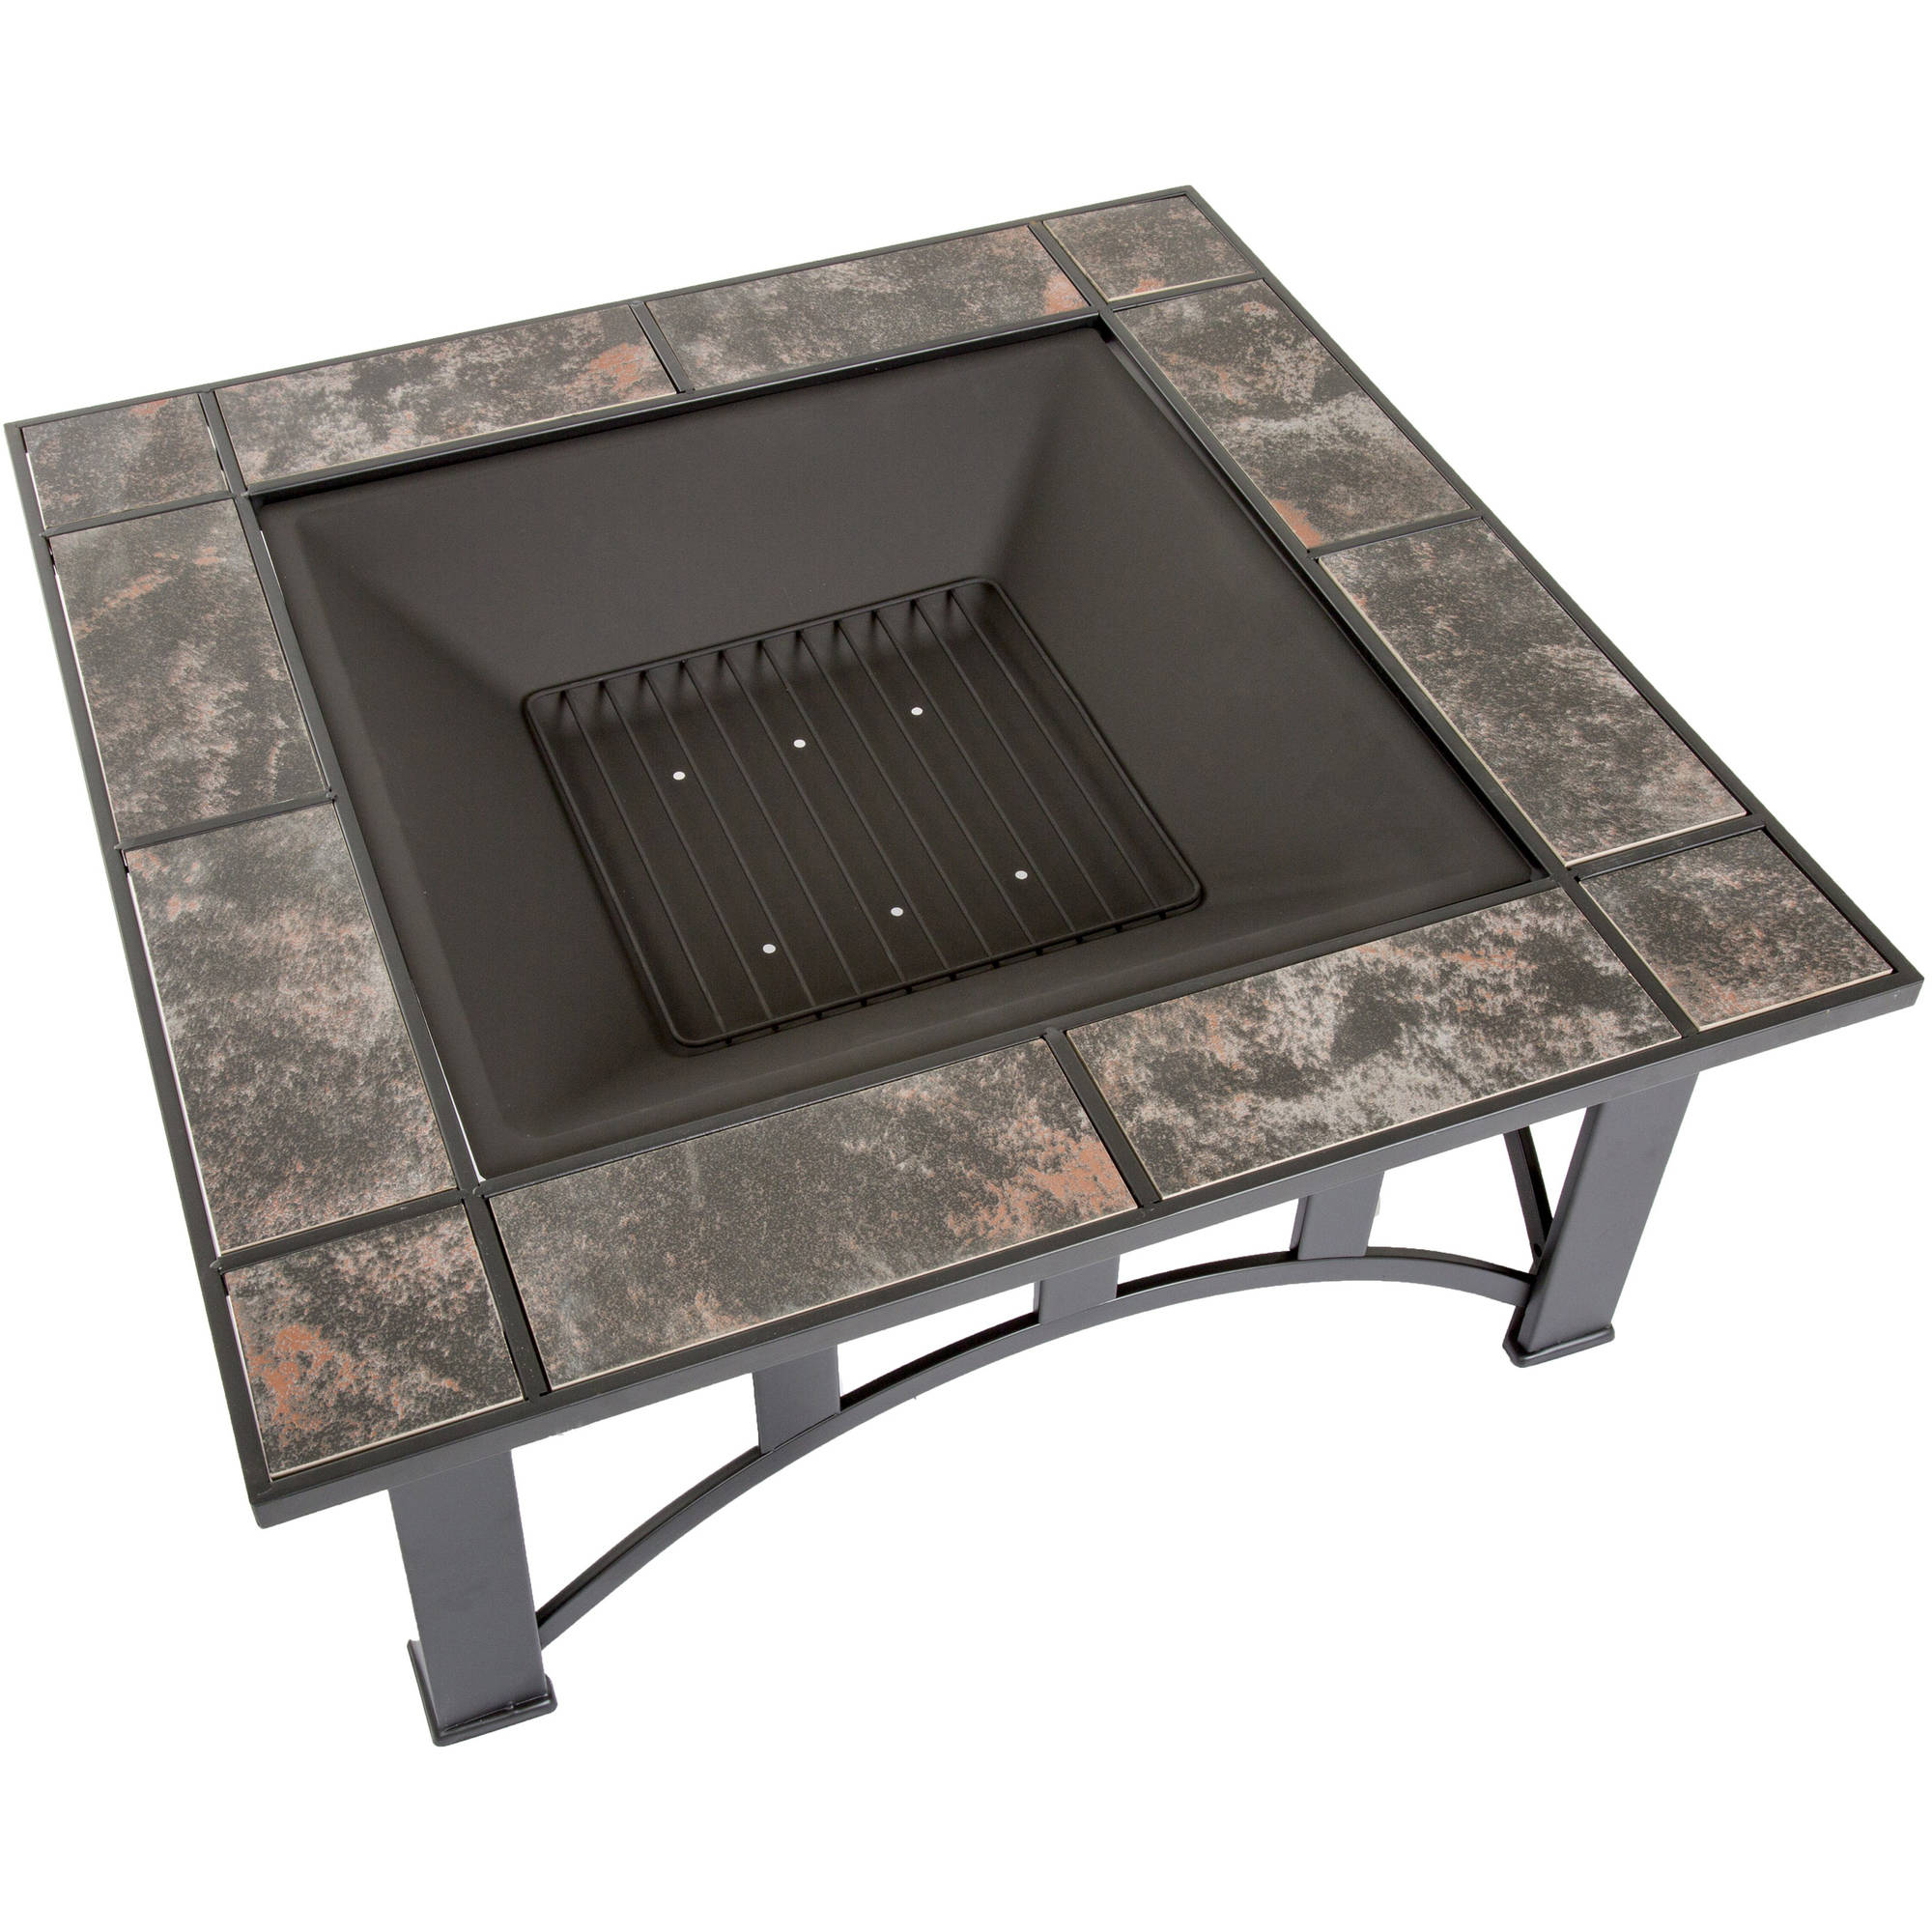 Fire Pit Set Wood Burning Pit Includes Screen Cover And Log intended for dimensions 2000 X 2000